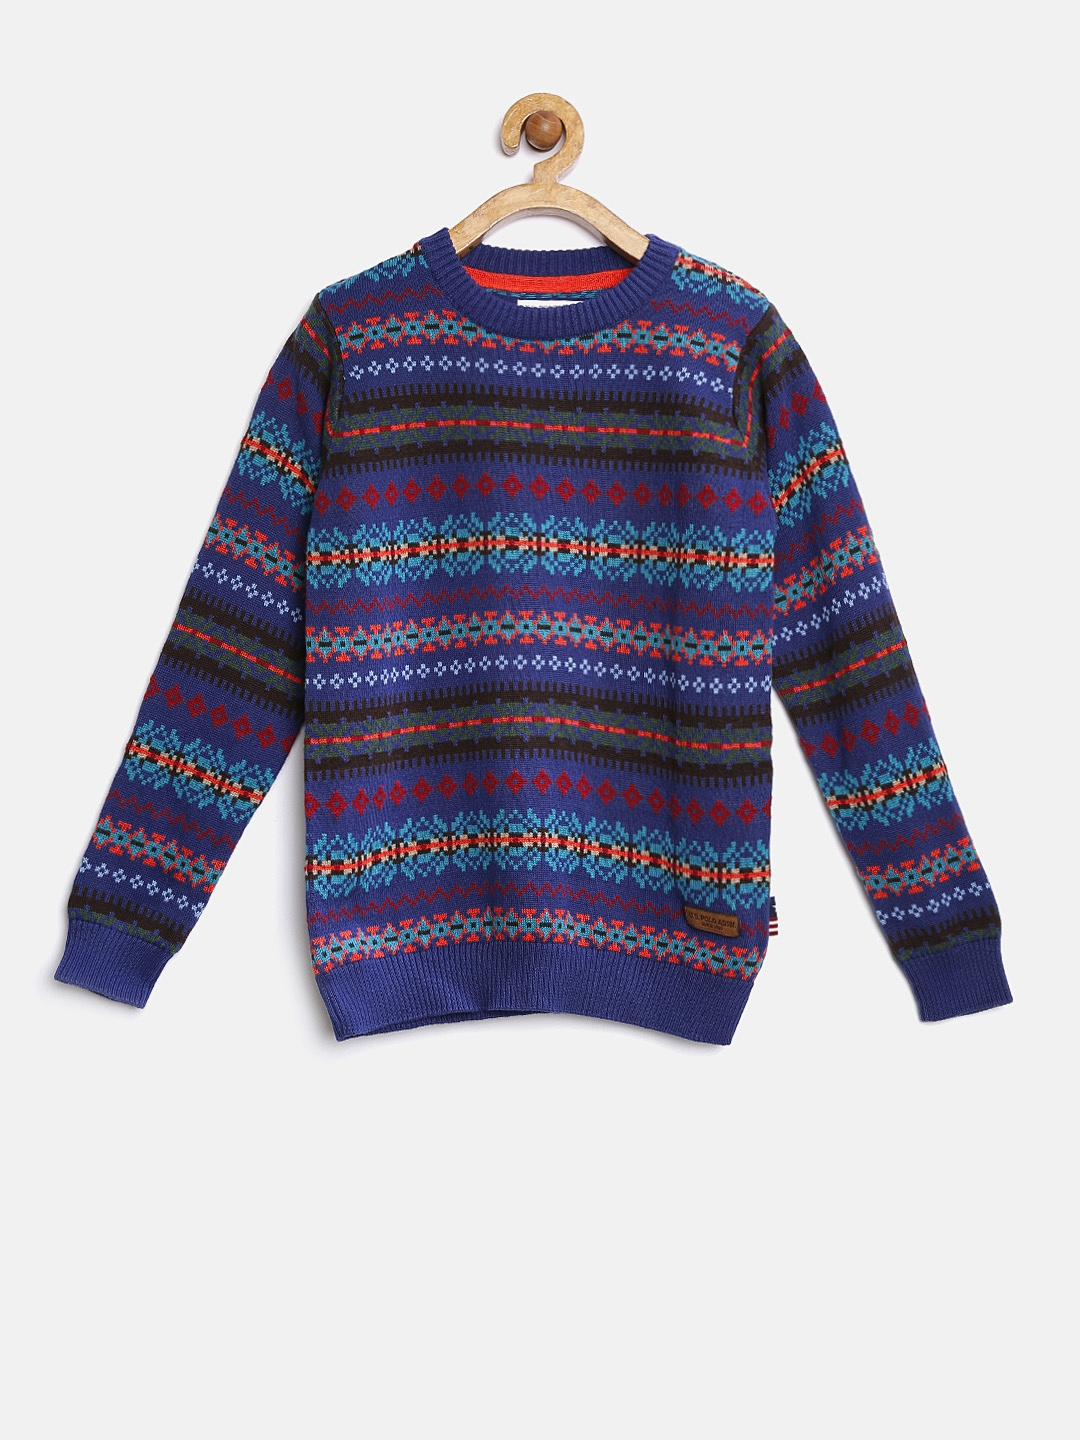 Boy Olive Green Fair Isle Sweater by Gymboree. 55% cotton/25% viscose/20% nylon, Half-button placket, Allover knit texture, Features intarsia-knit design, Sherpa-lined collar, Ribbed collar, cuffs & hem and Machine wash; imported.